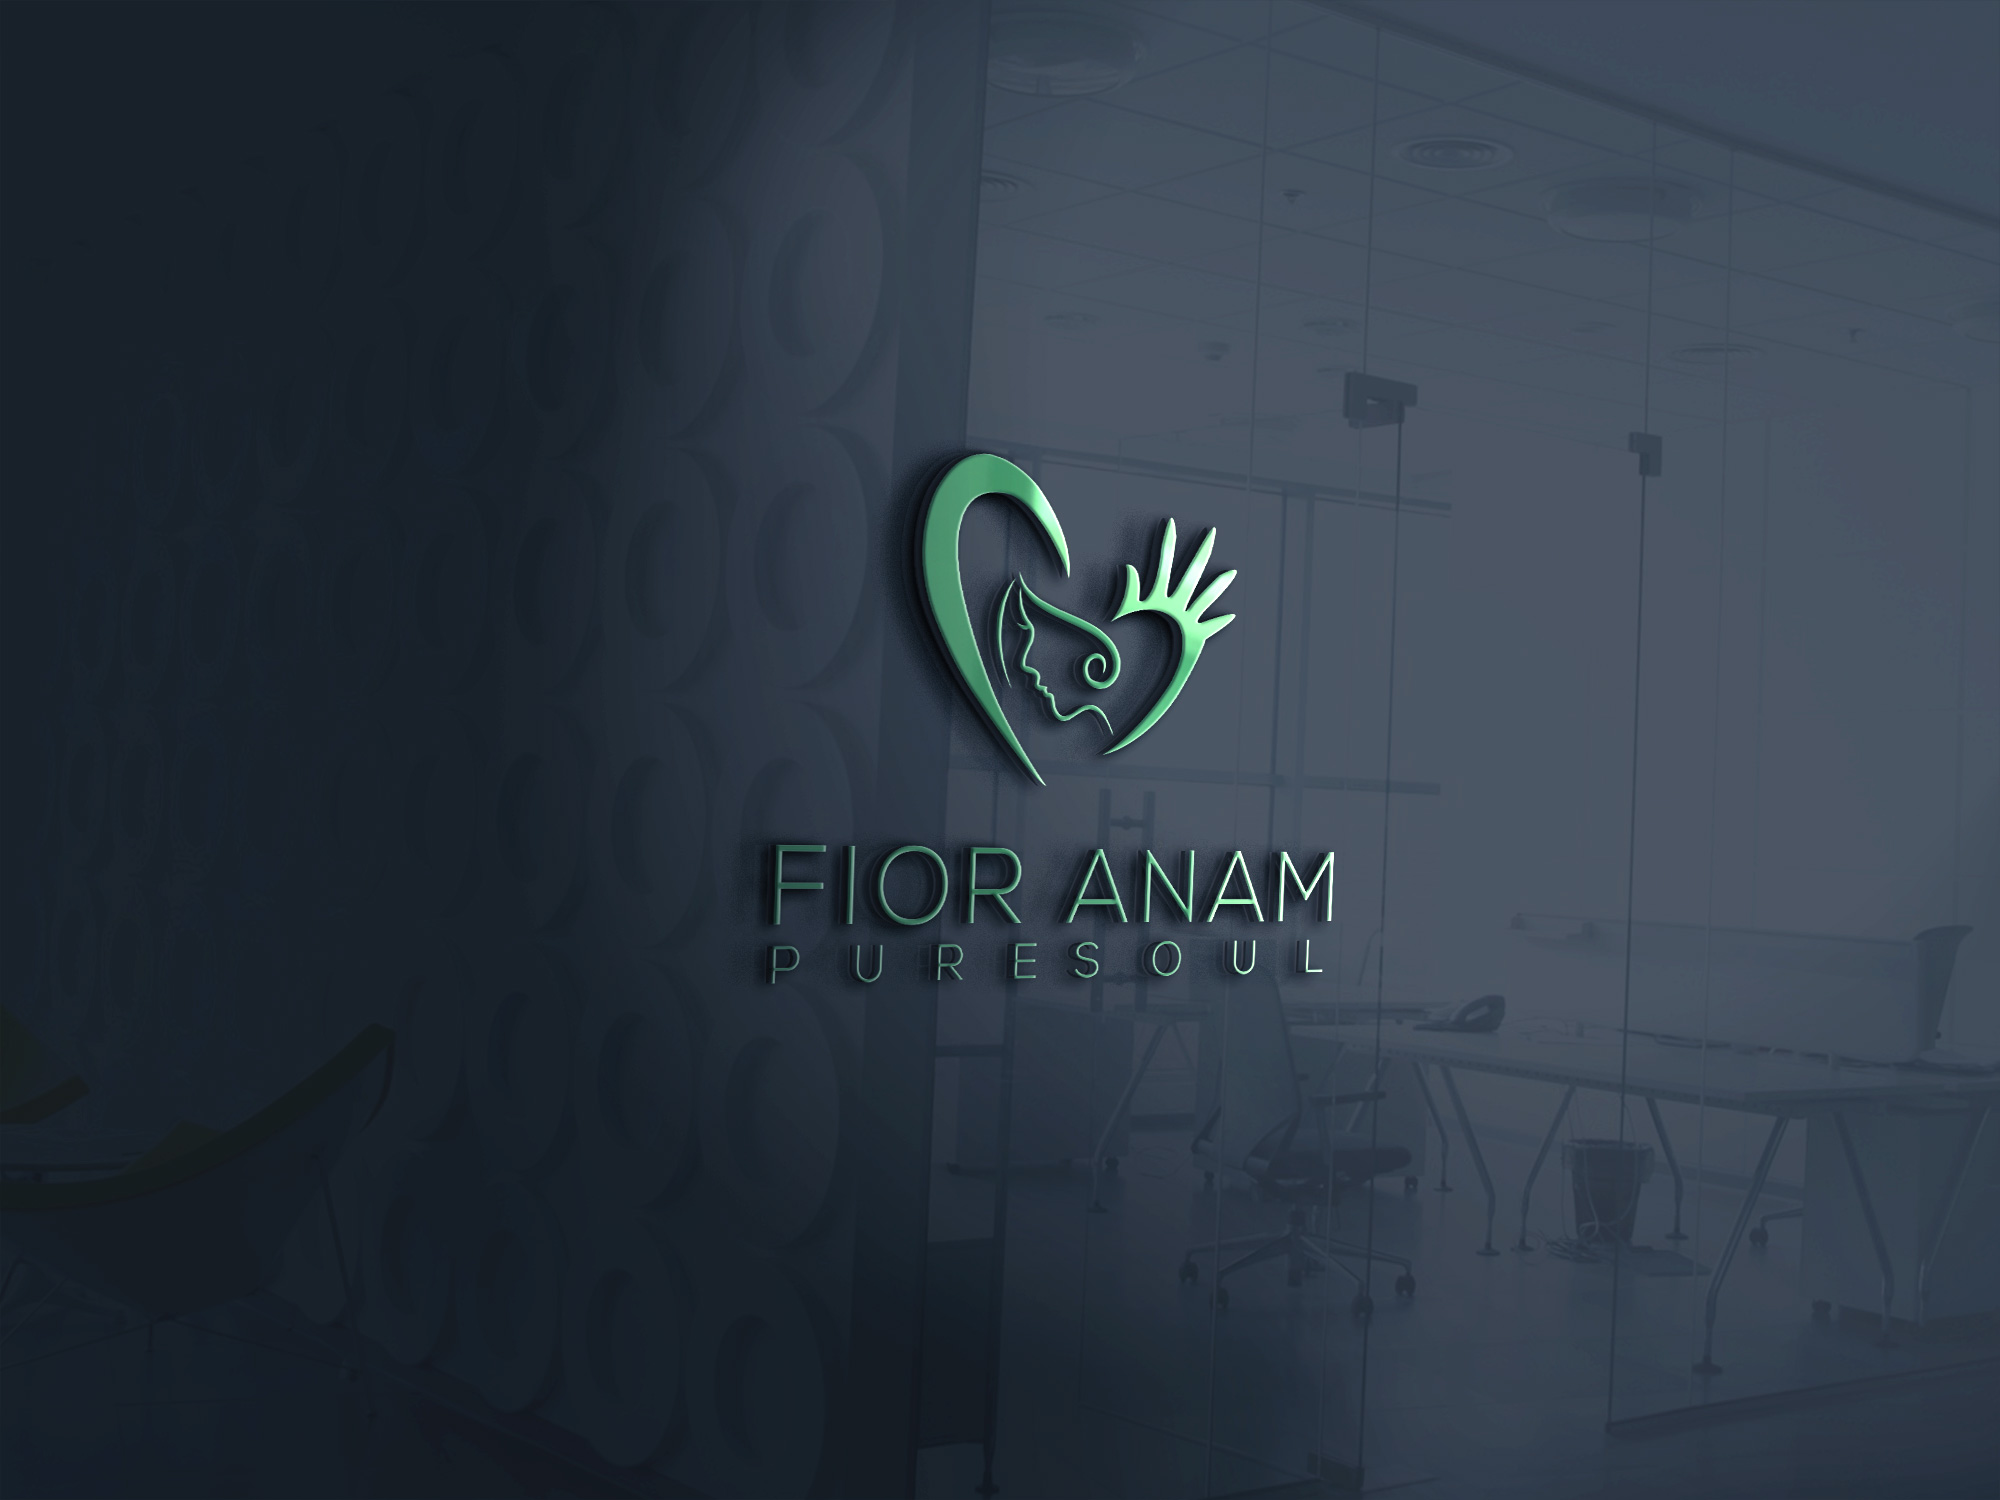 Logo Design by Robiul Robin - Entry No. 362 in the Logo Design Contest Creative Logo Design for Fior Anam.